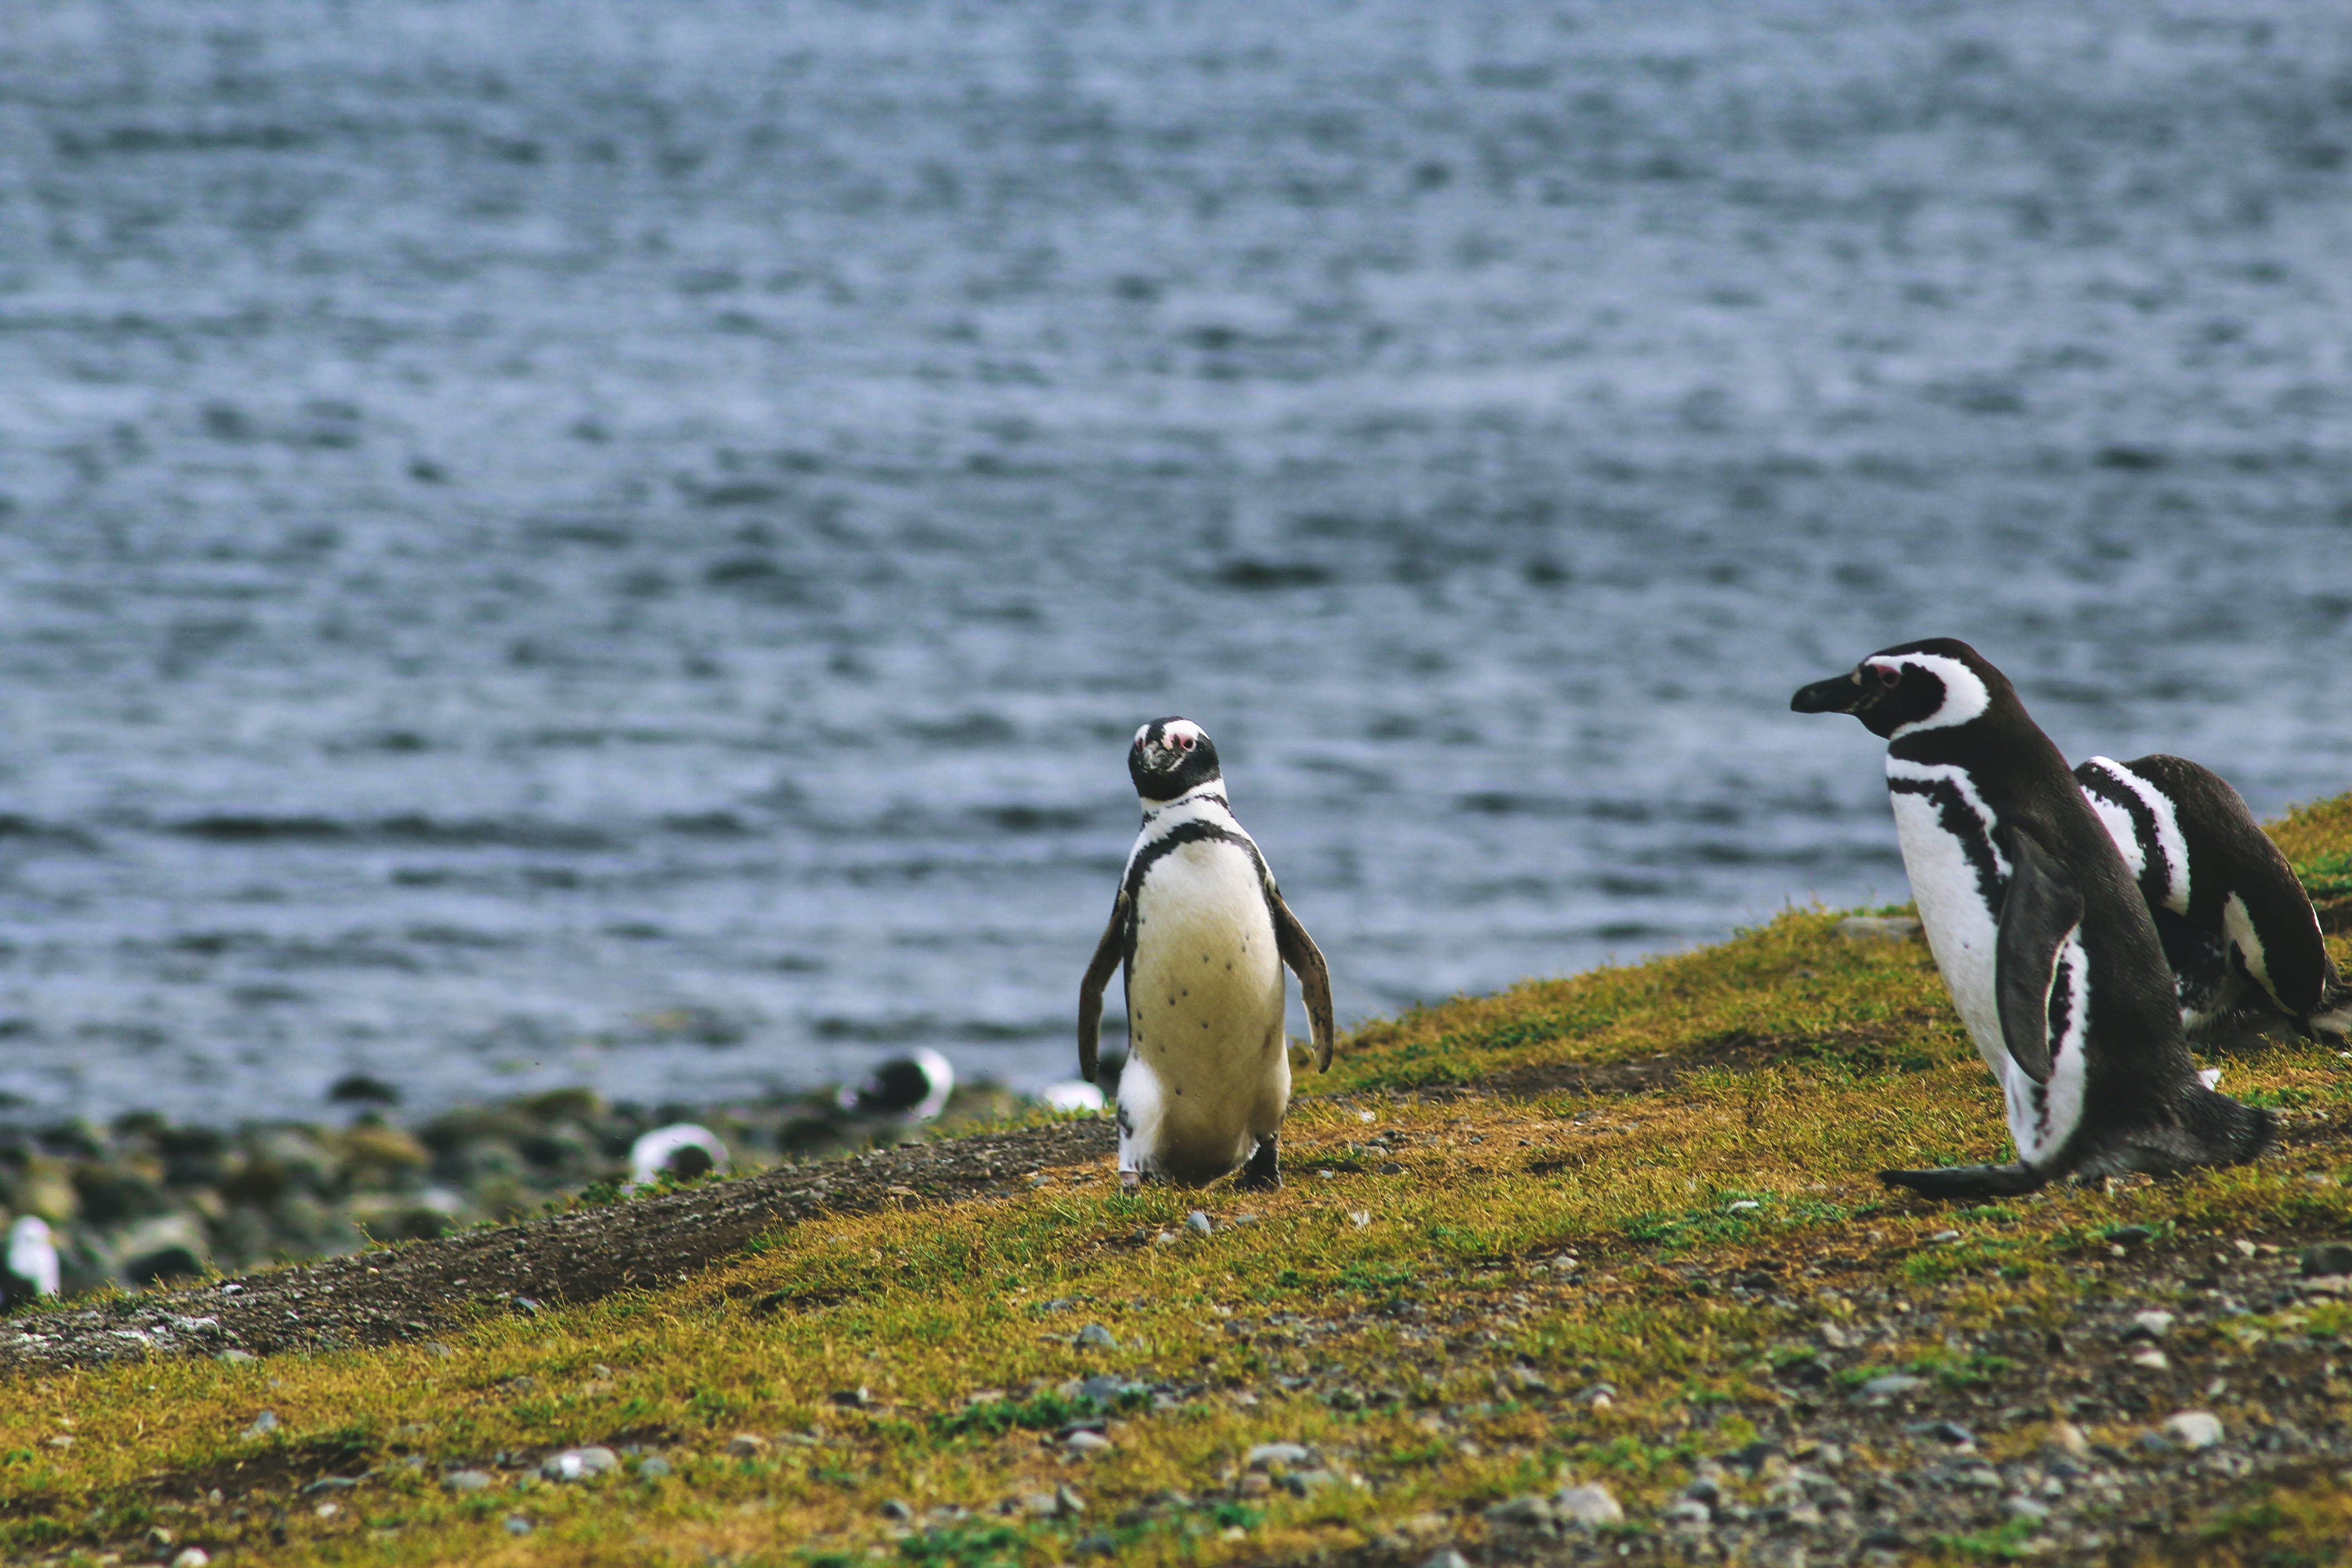 three penguins on grass field near sea